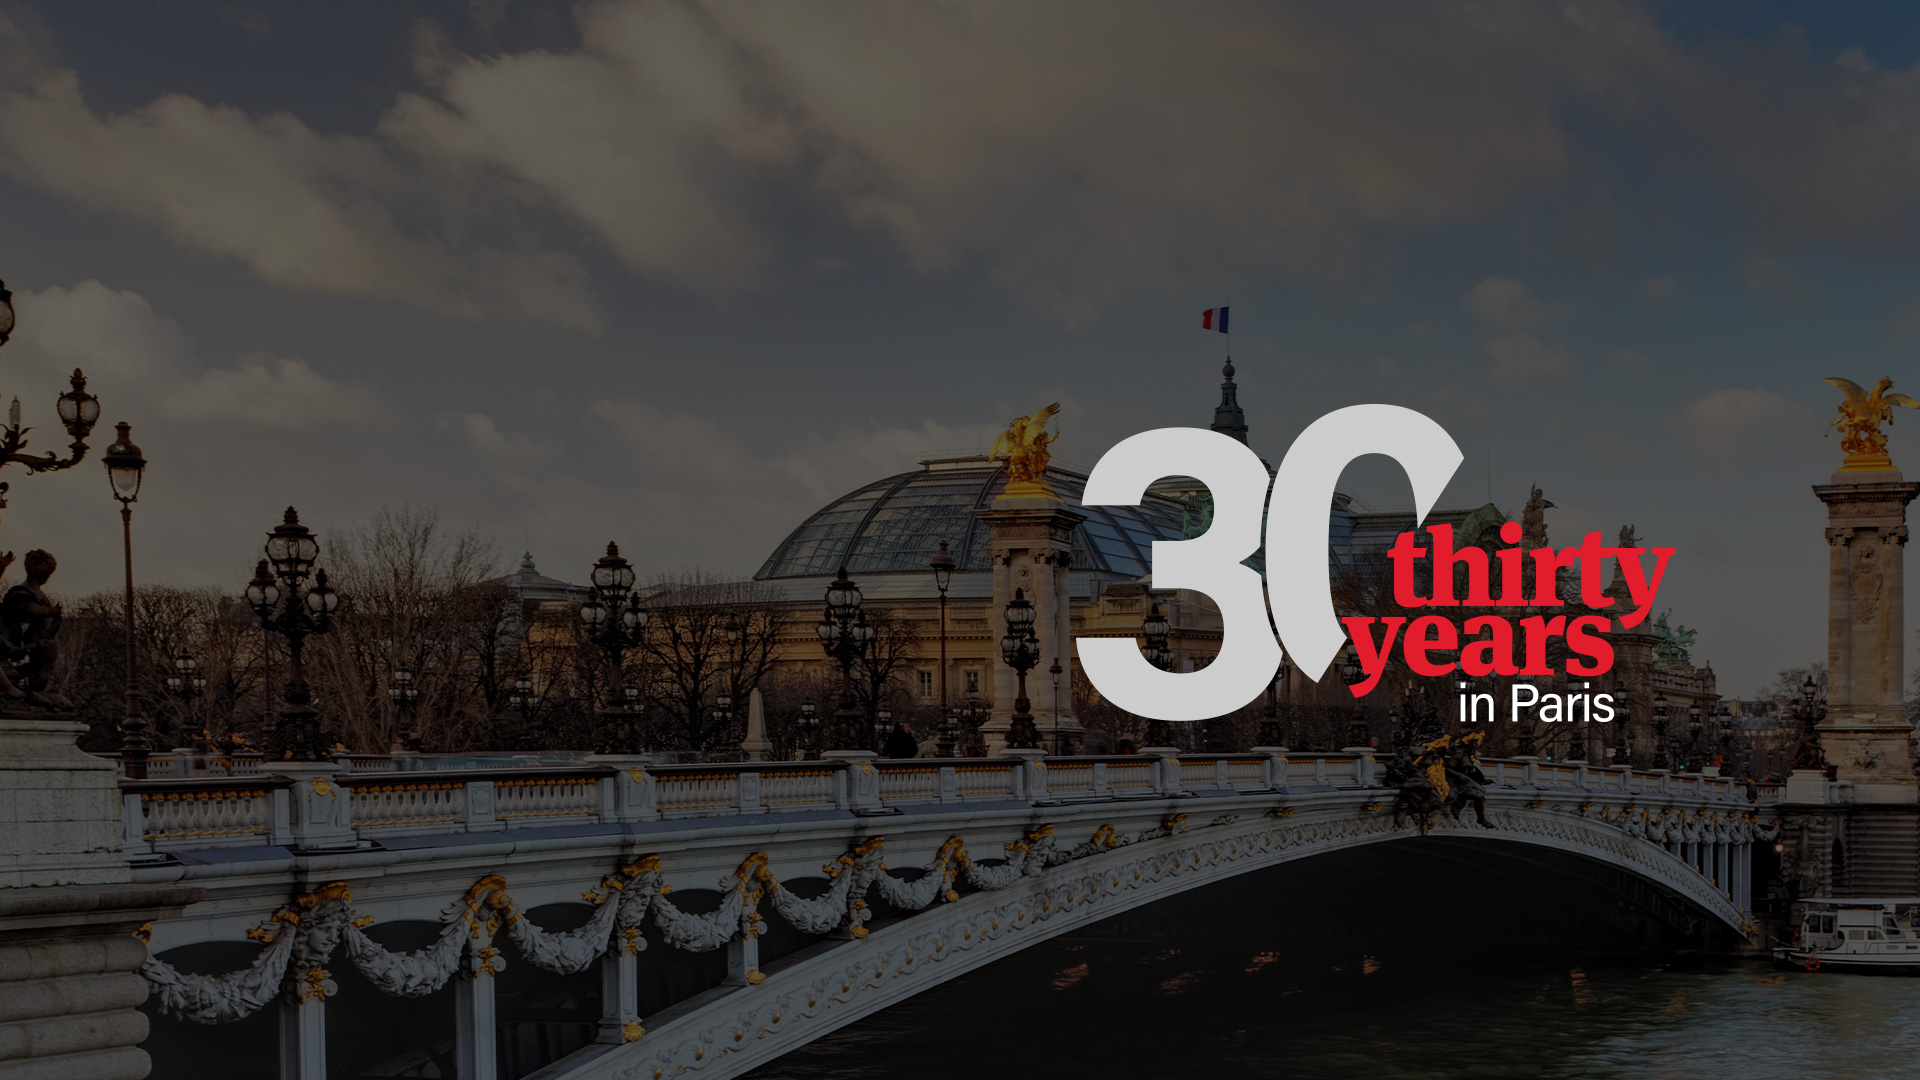 30 years in Paris